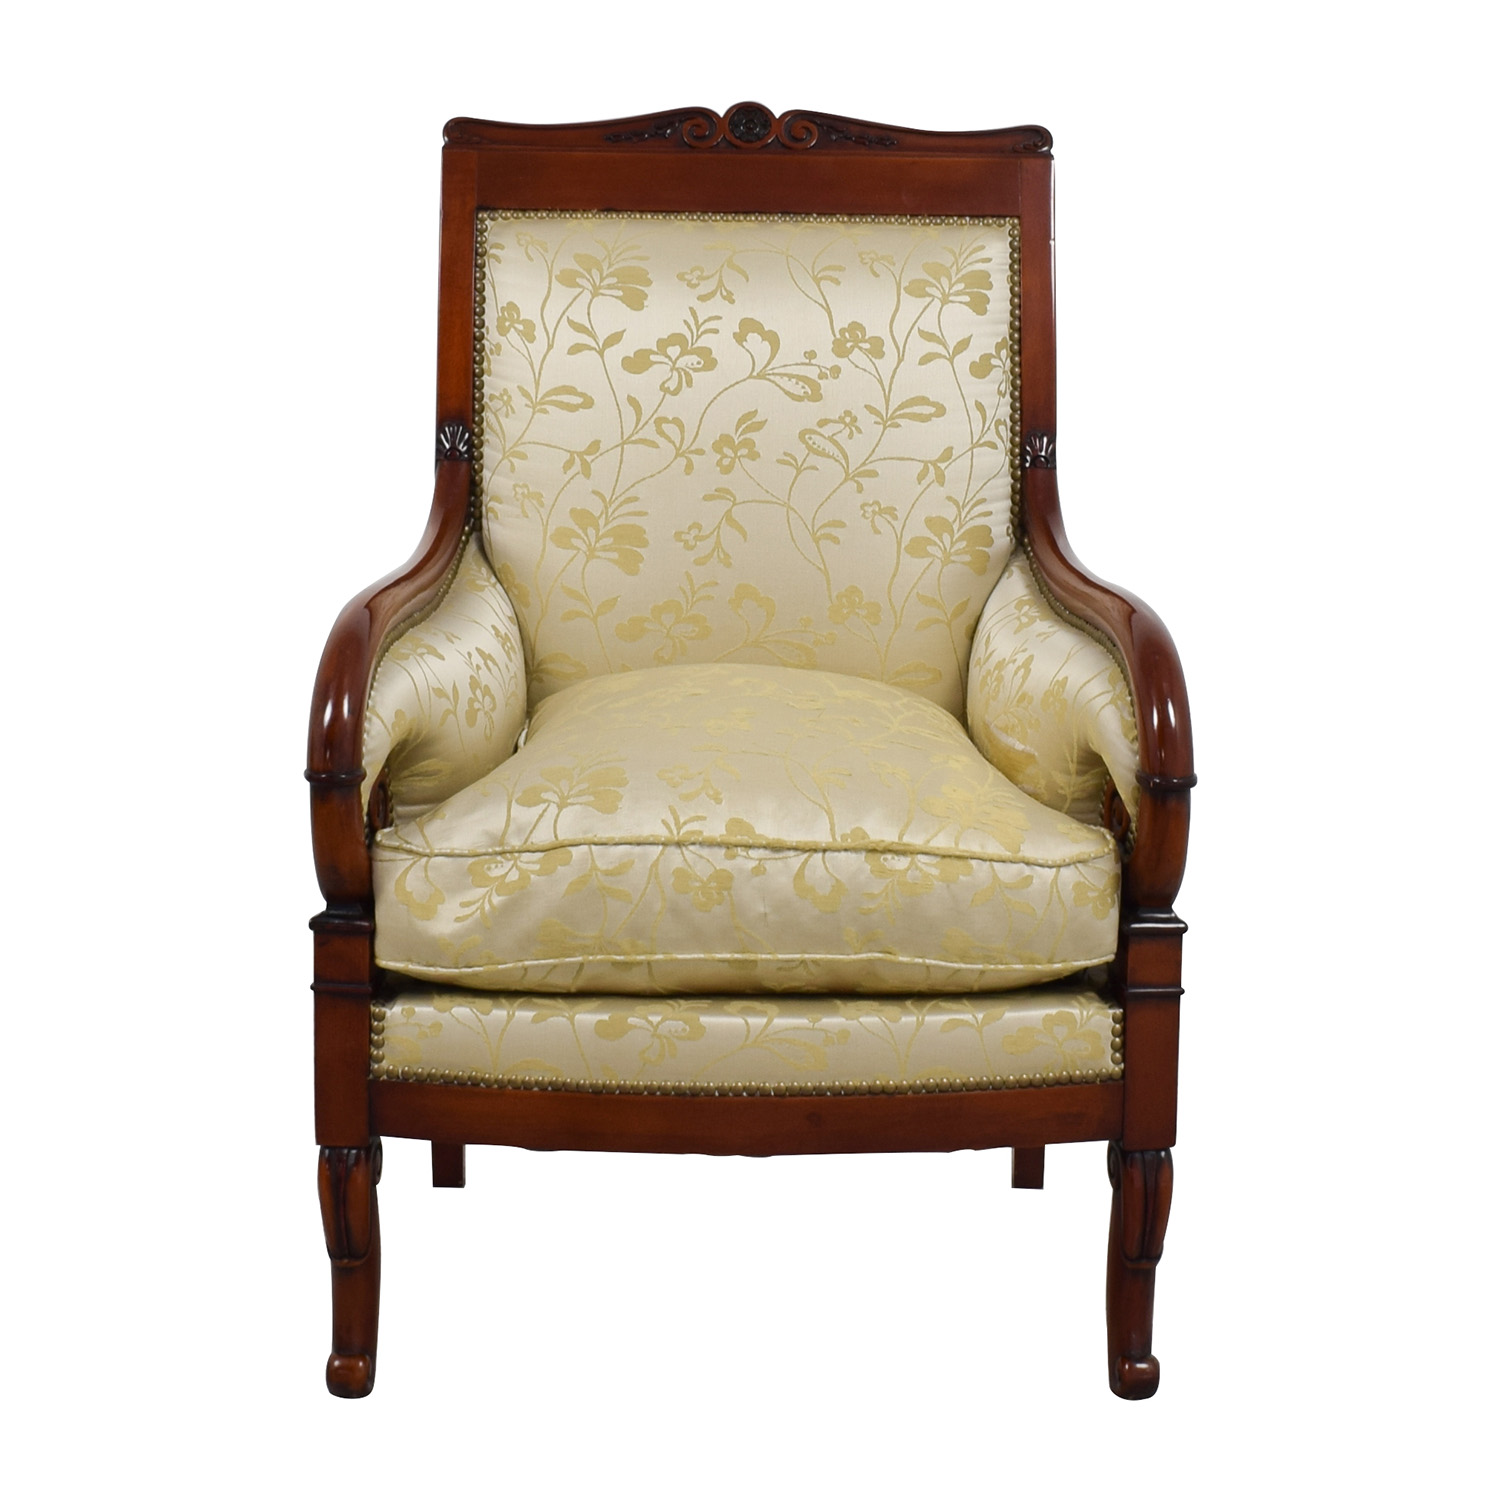 Charmant Silk Damask Gold Upholstered Chair ...